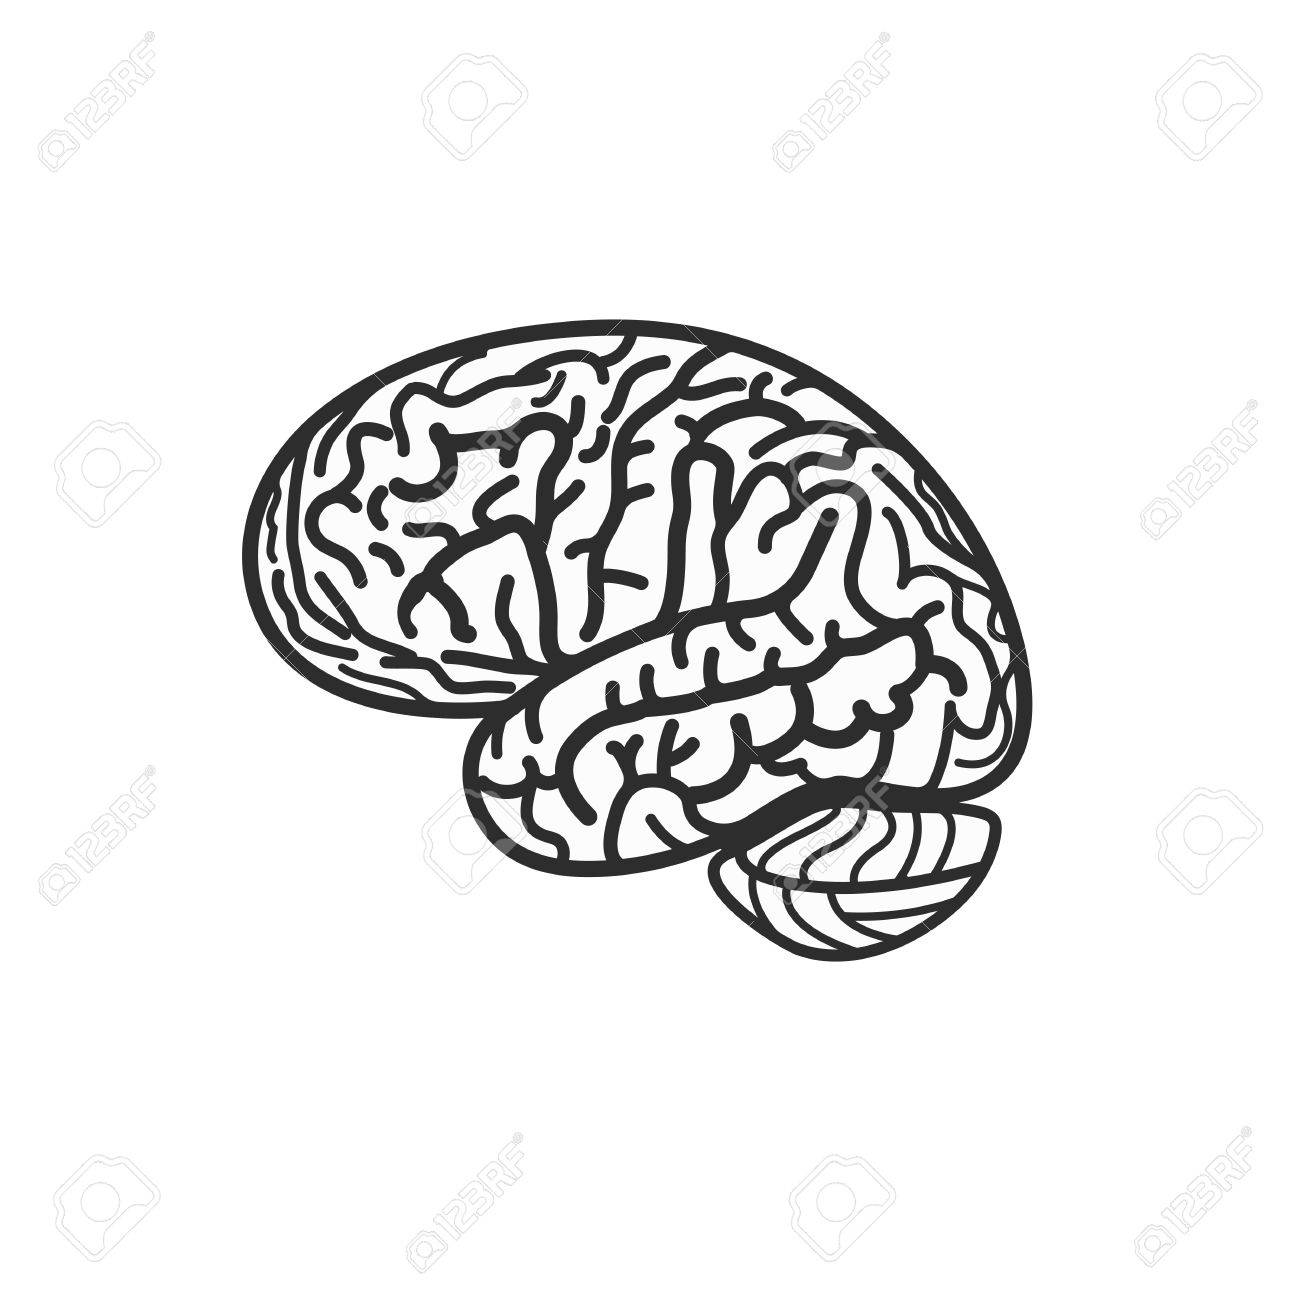 Isolated Black And White Brain Contour Vector Logo. Gyrus Silhouette ...